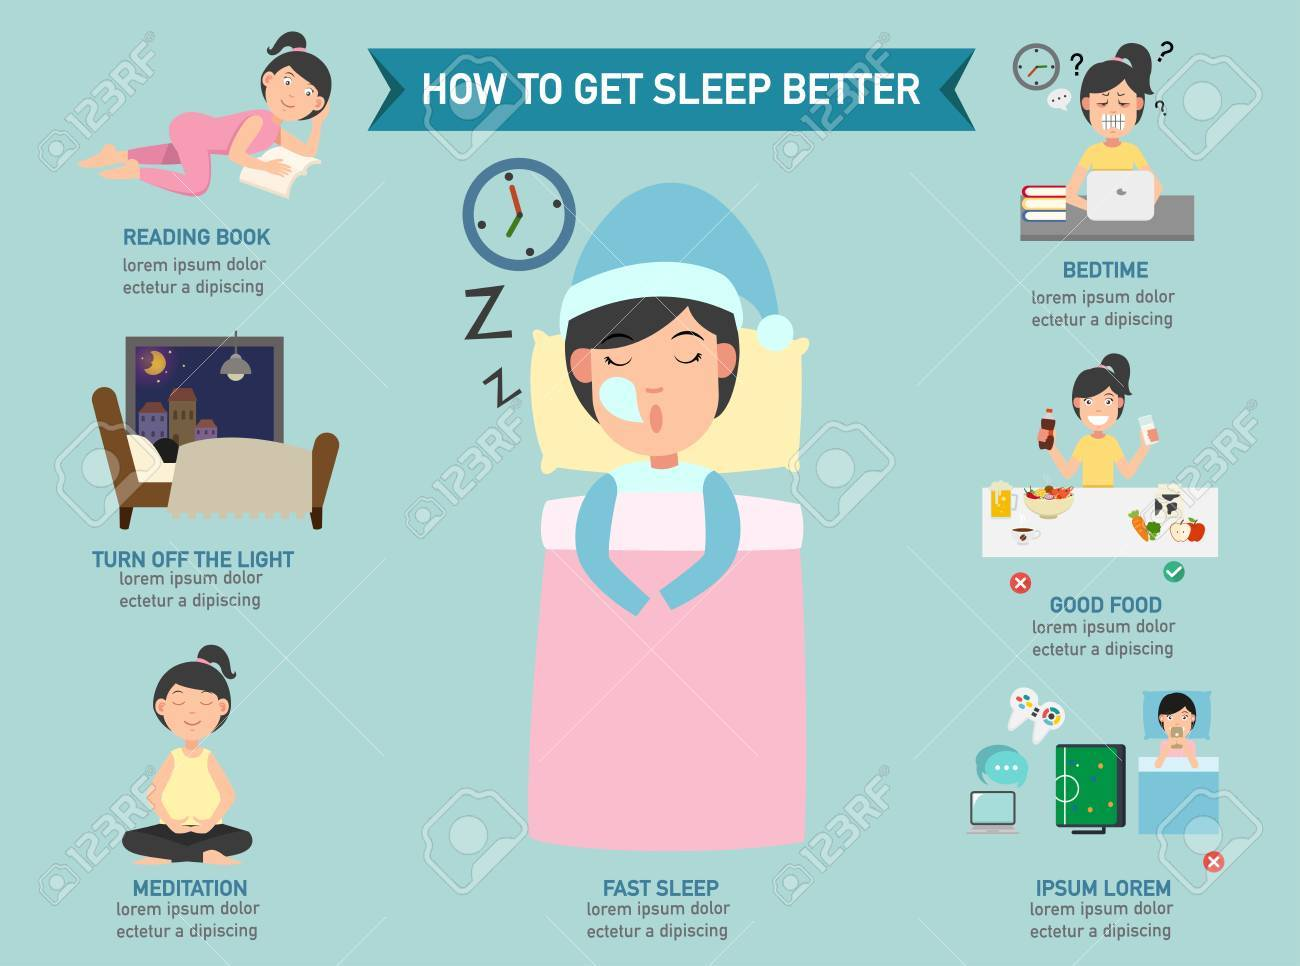 How to get sleep better infographic,vector illustration - 67944314